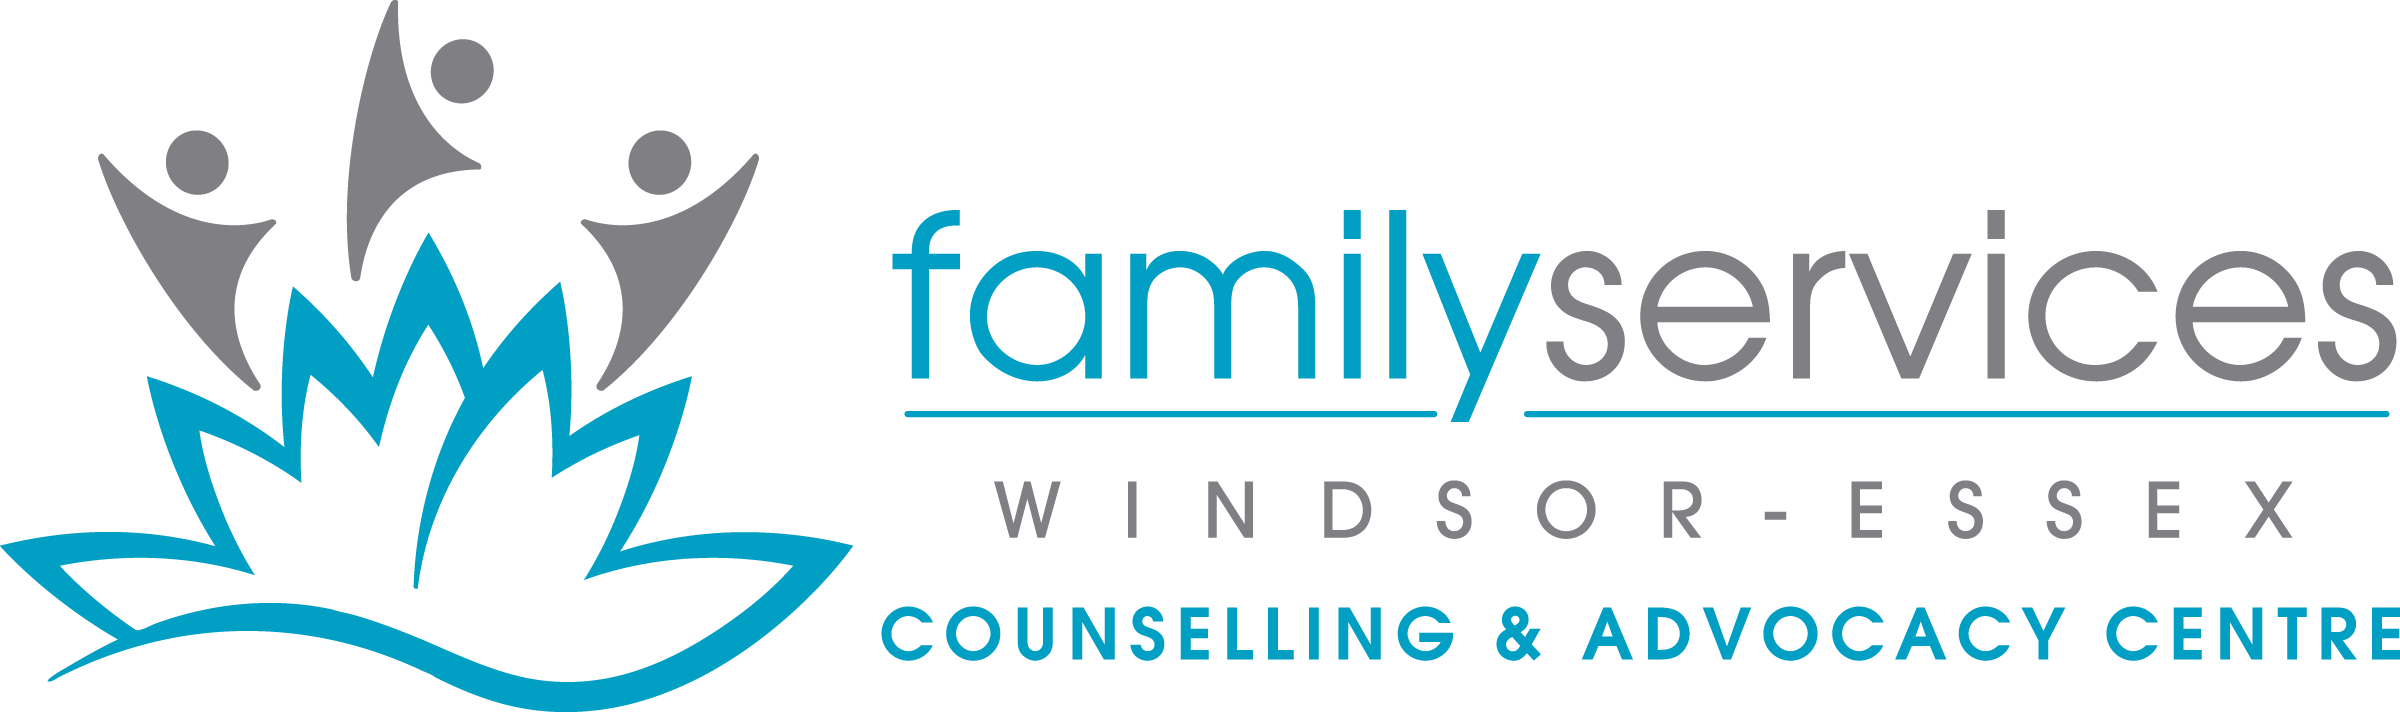 FSWE - Counselling & Advocacy Centre